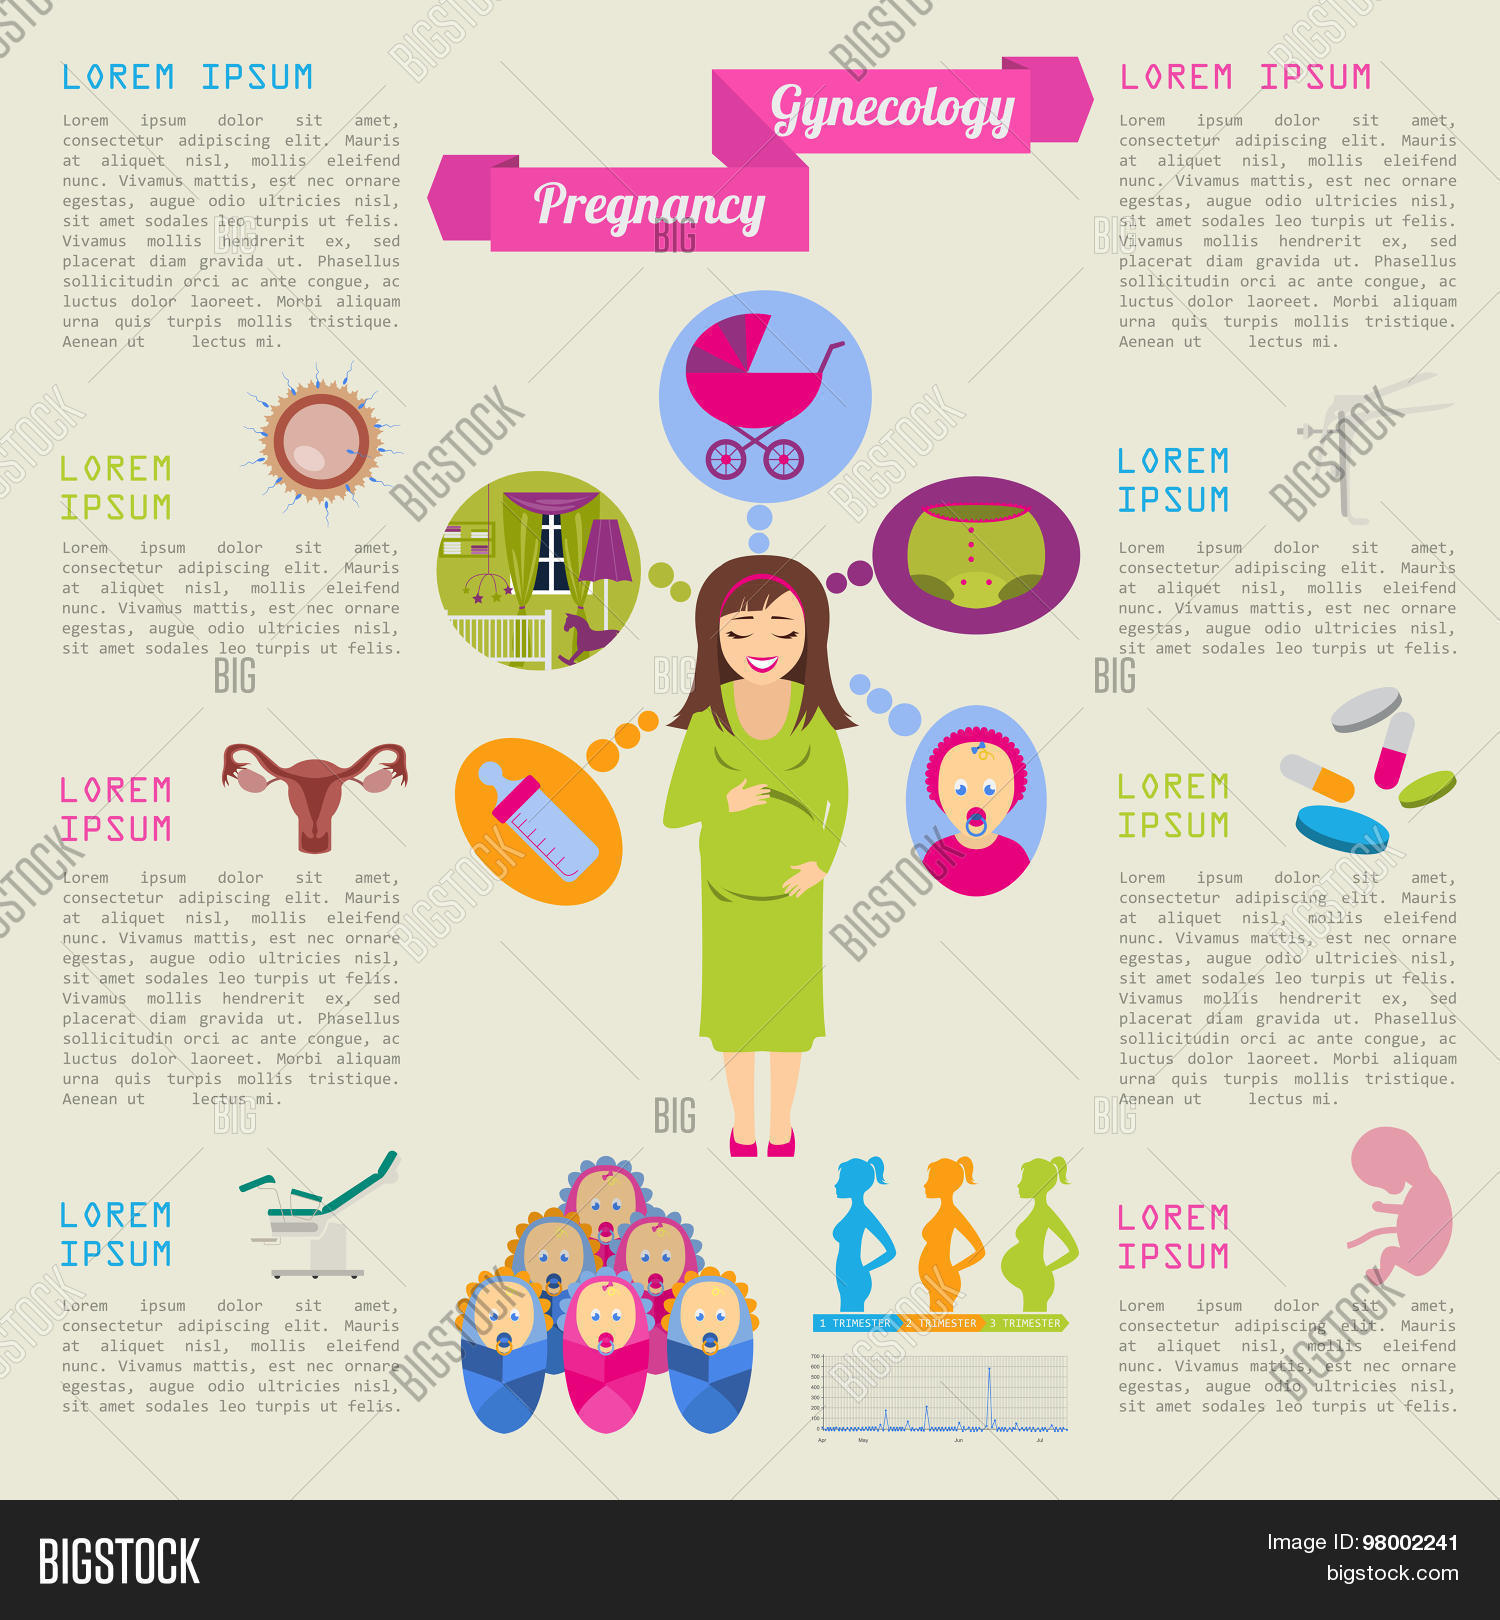 Gynecology and pregnancy infographic template. Motherhood ...